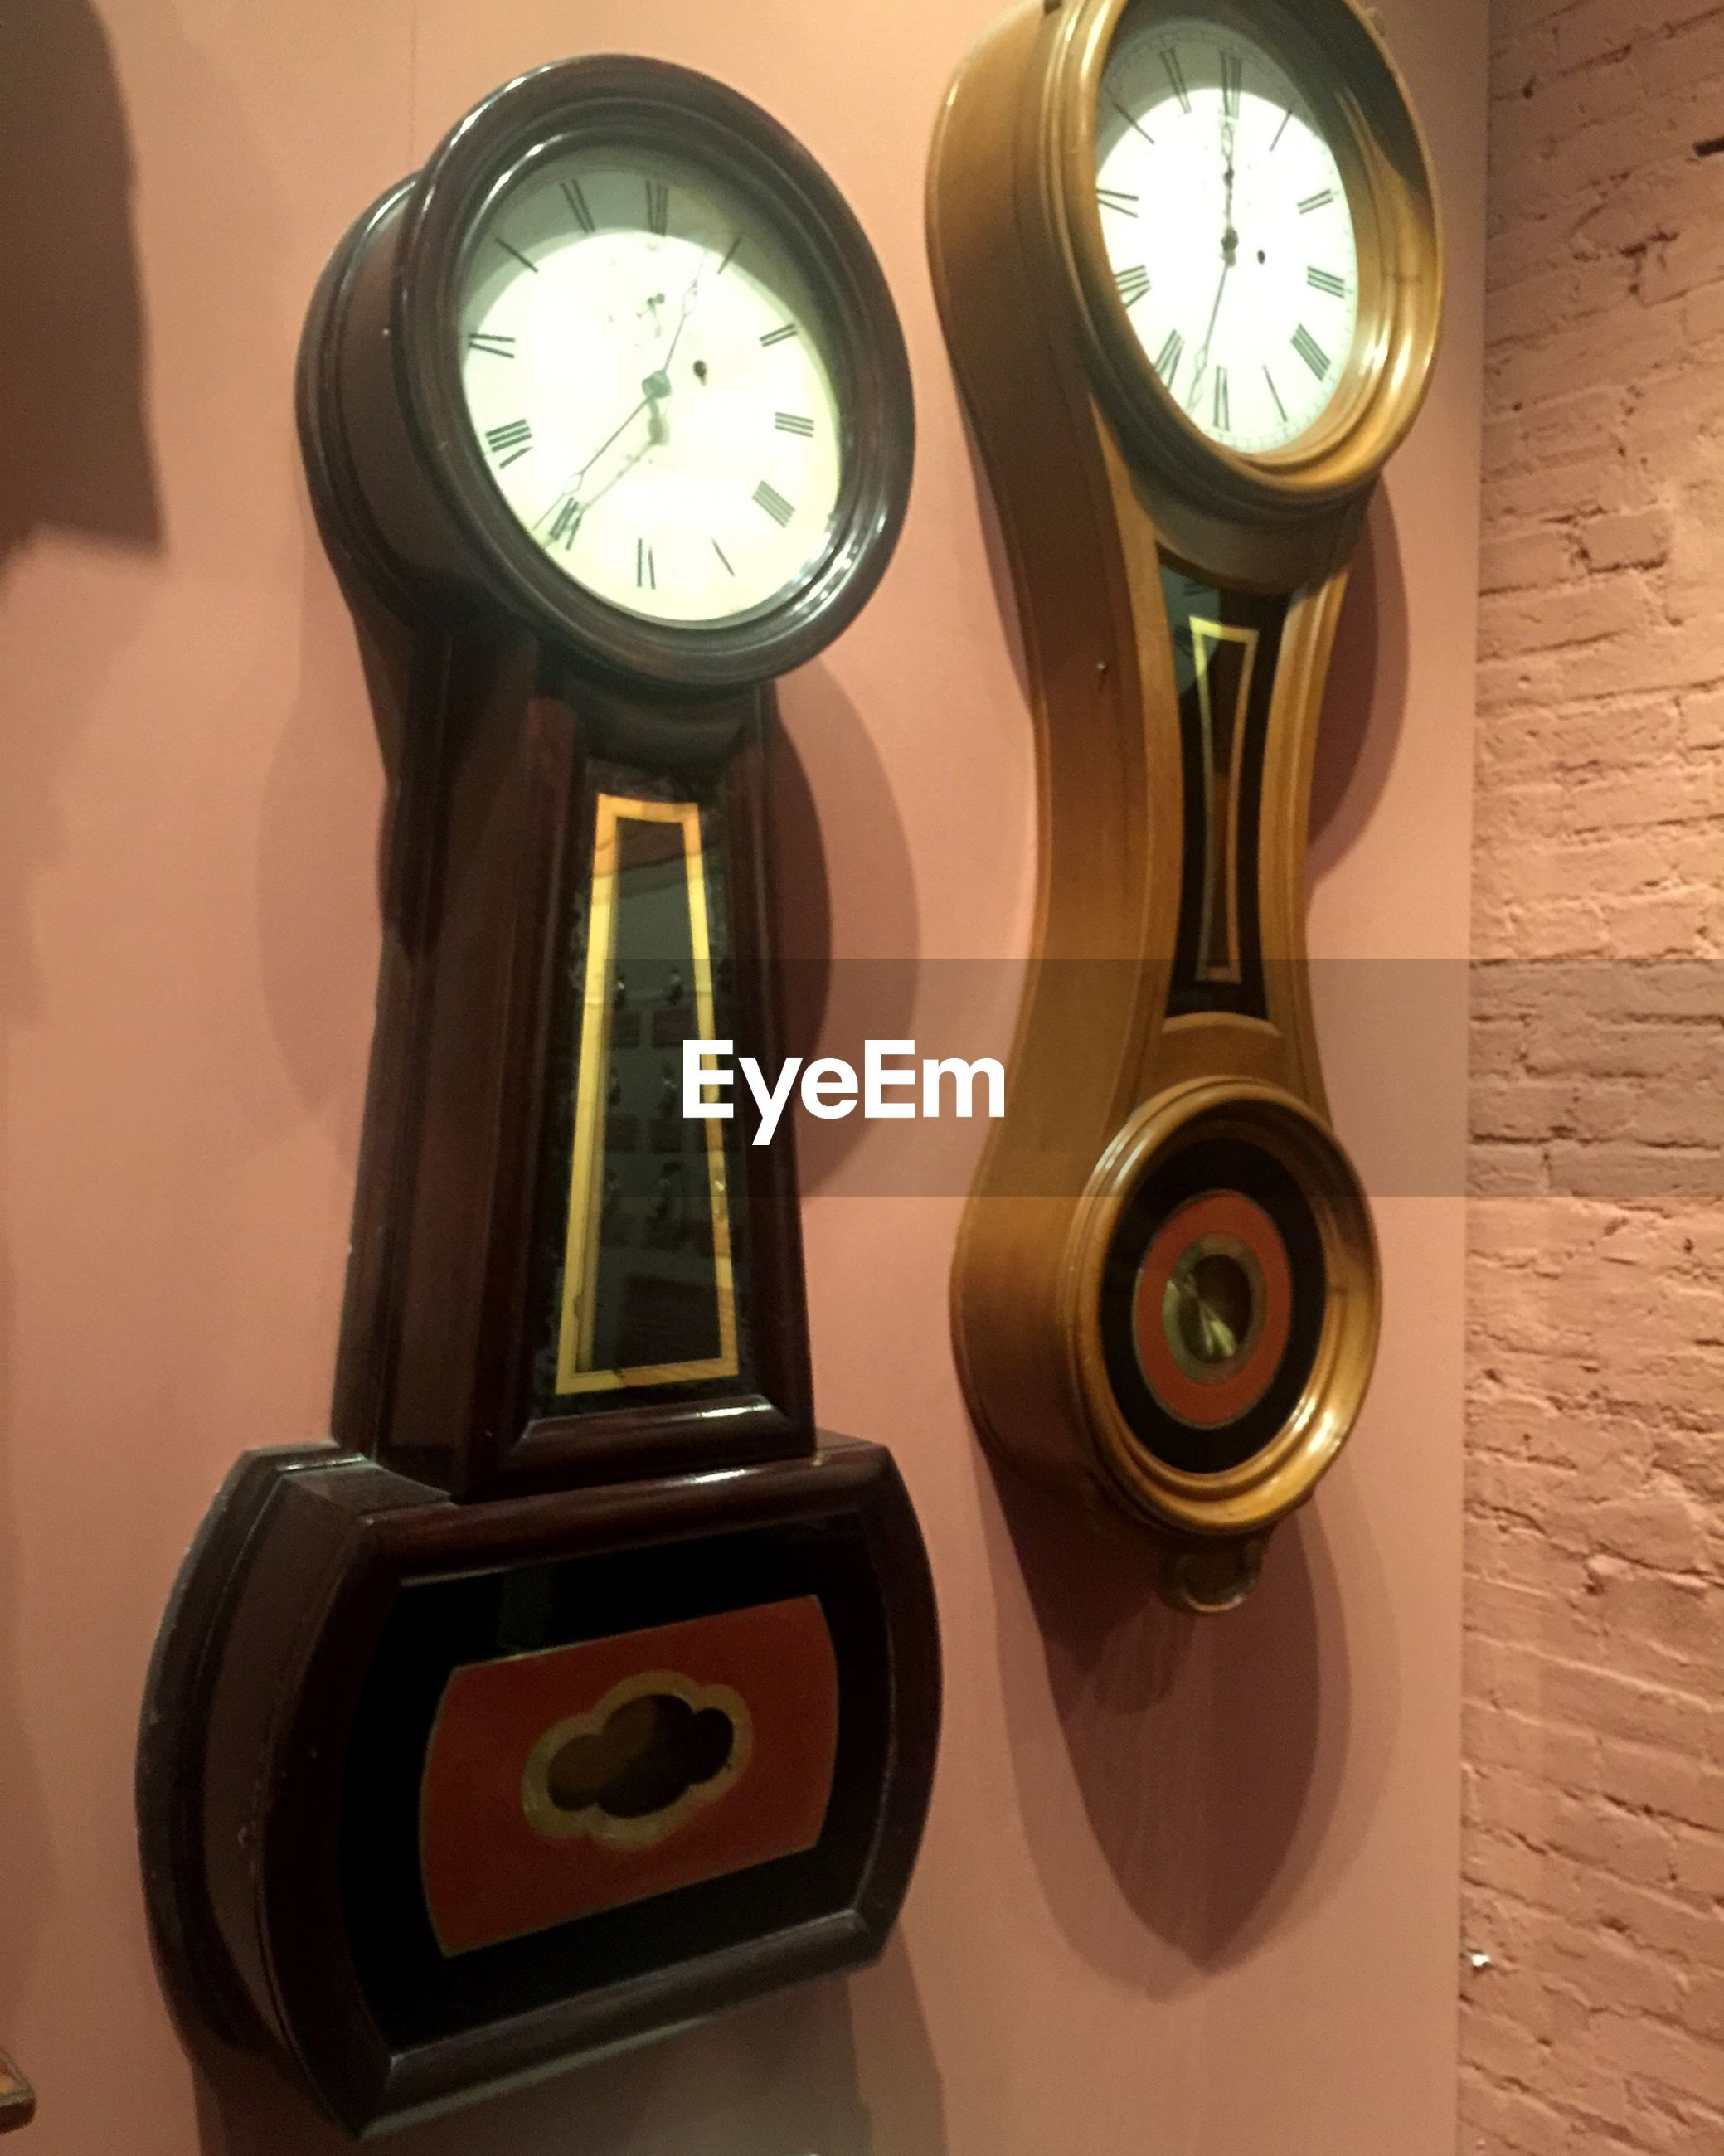 clock, time, indoors, old-fashioned, retro styled, close-up, technology, number, antique, metal, clock face, old, circle, accuracy, no people, wall - building feature, vintage, instrument of time, minute hand, still life